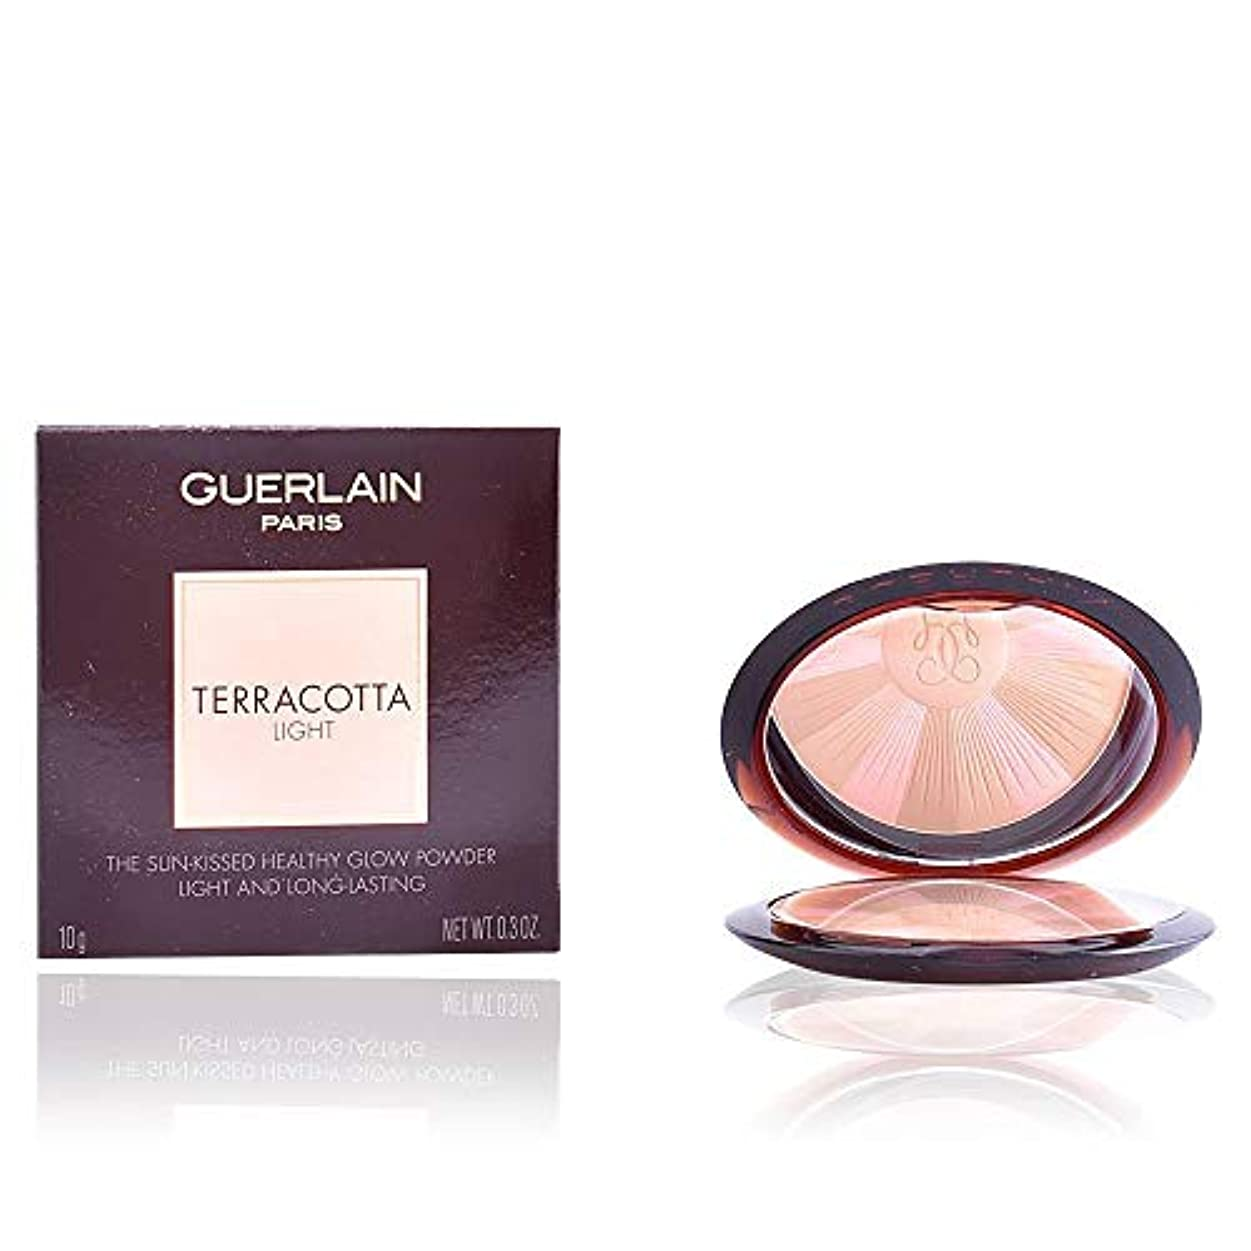 橋ホテル謝罪するゲラン Terracotta Light The Sun Kissed Healthy Glow Powder - # 00 Light Cool 10g/0.3oz並行輸入品